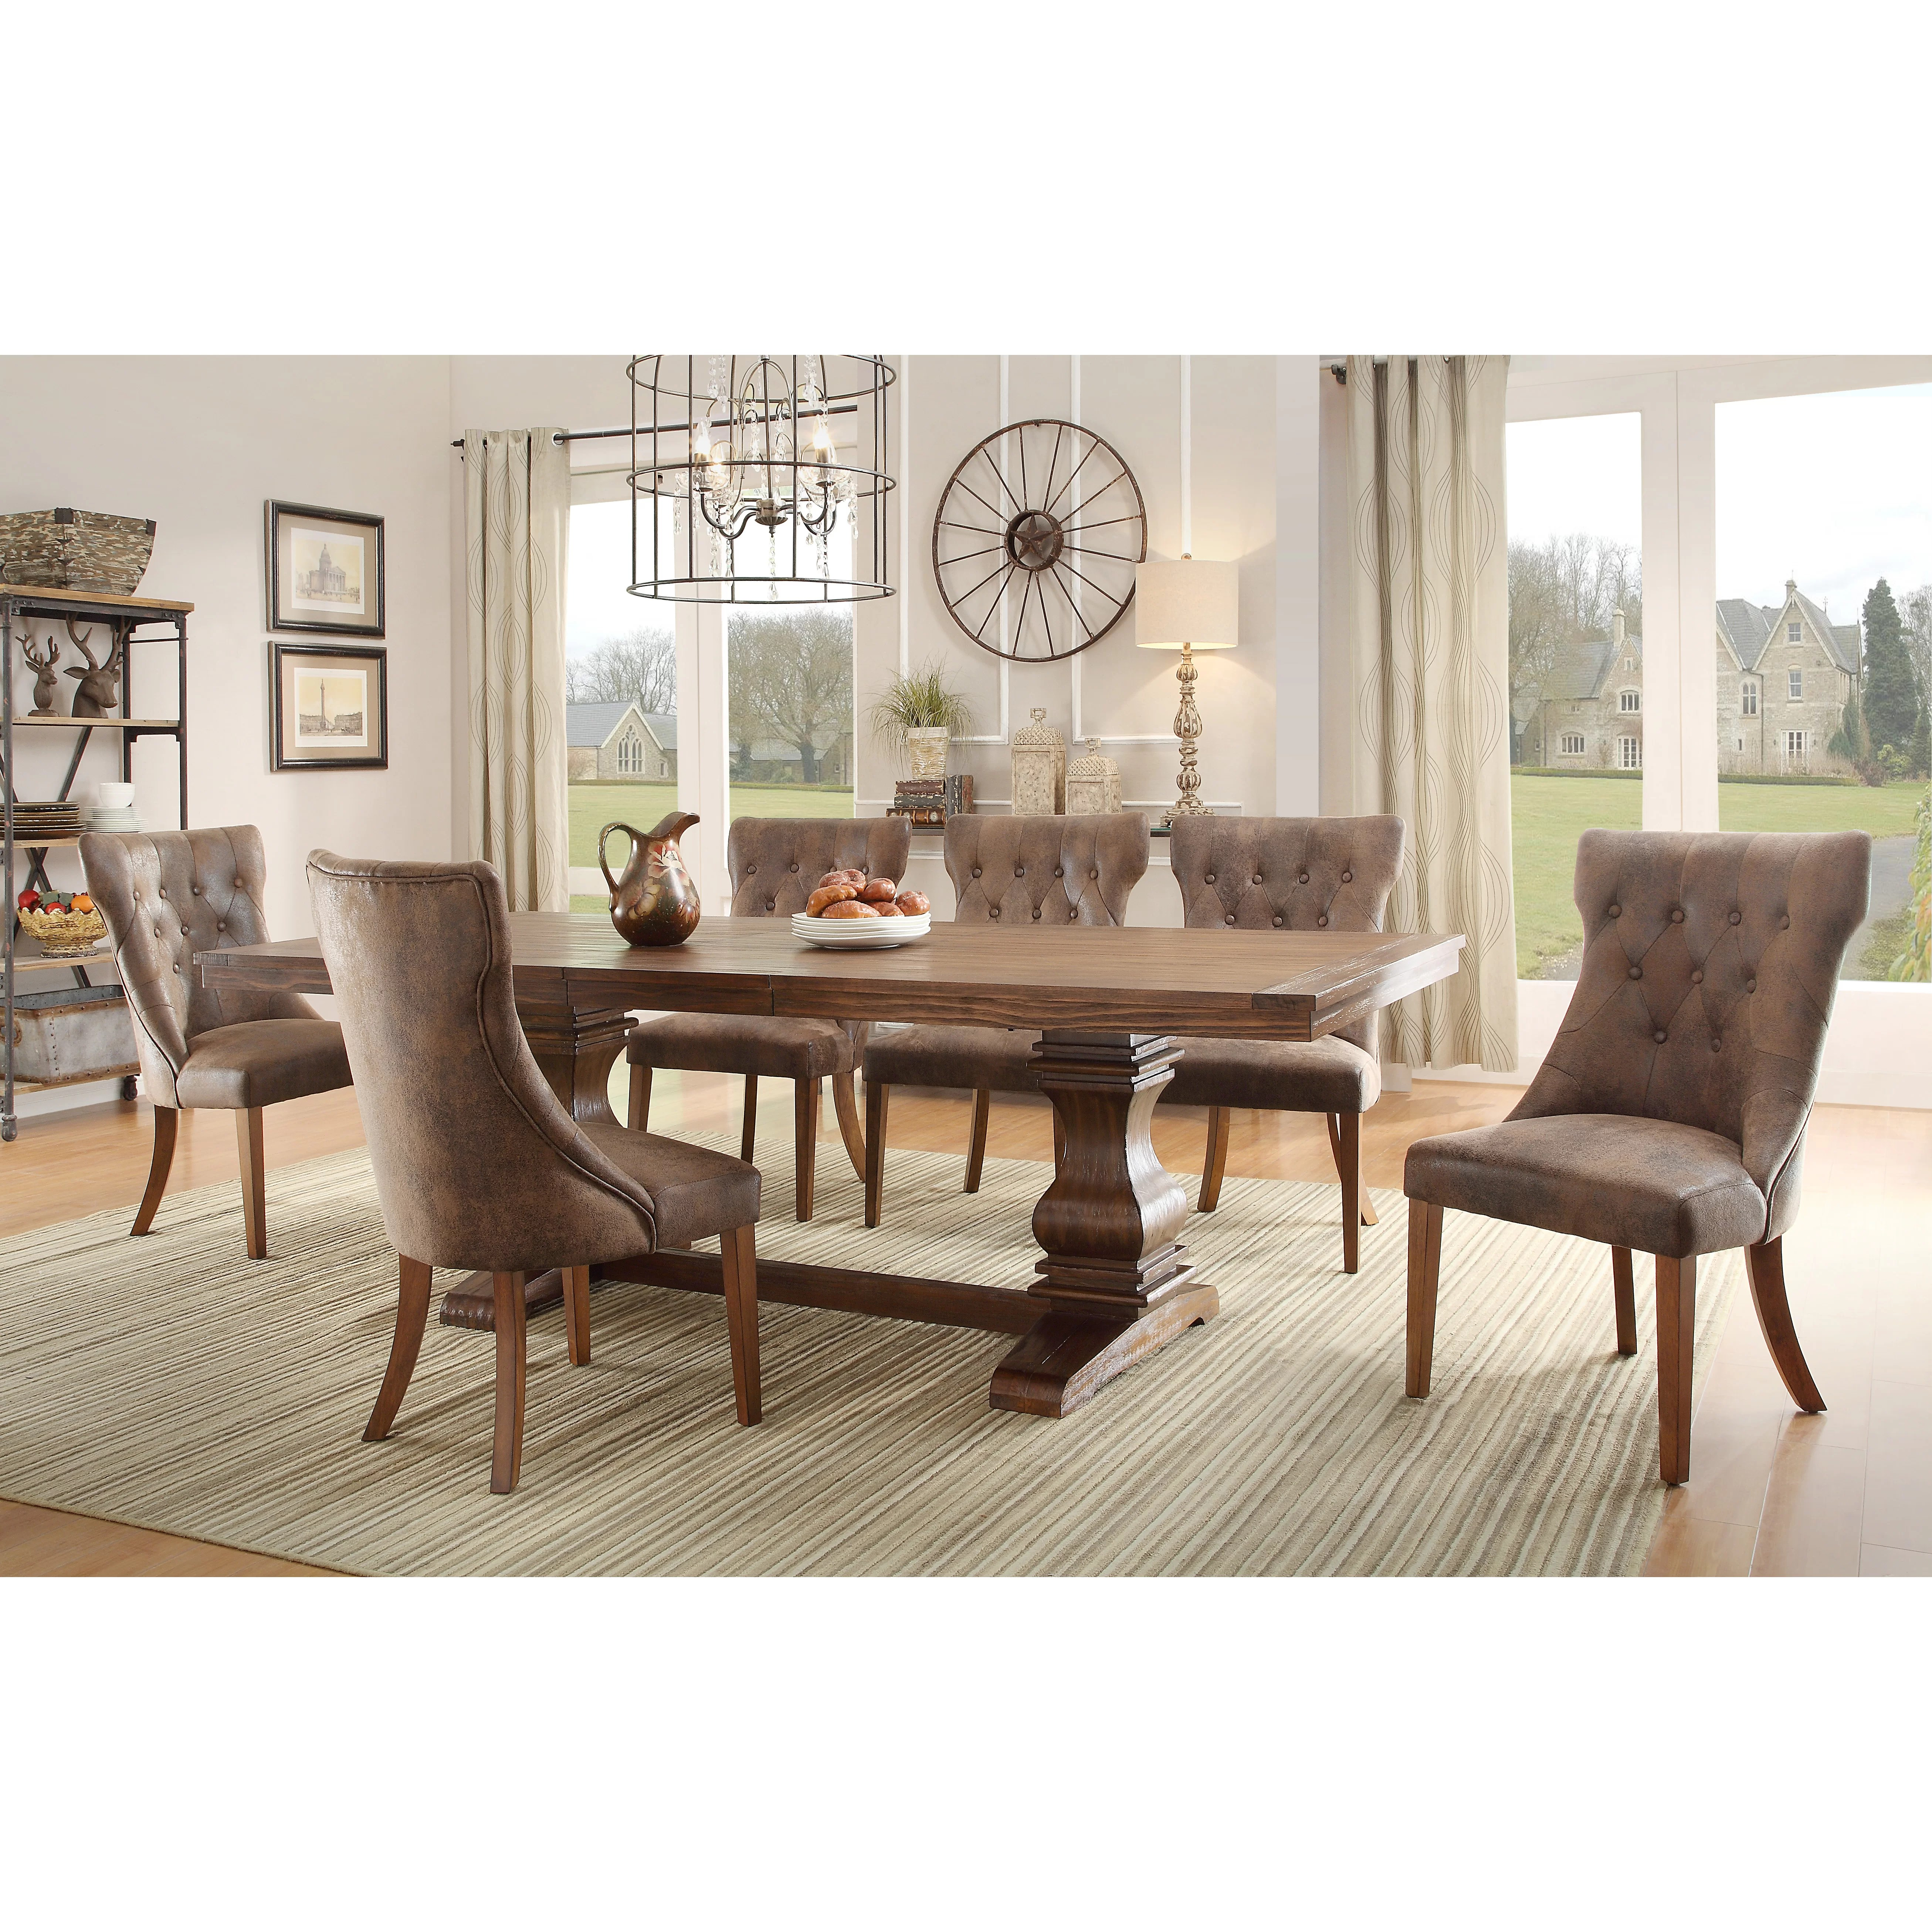 cottage country kitchen dining tables c a~ country kitchen tables QUICK VIEW Elton Extendable Dining Table